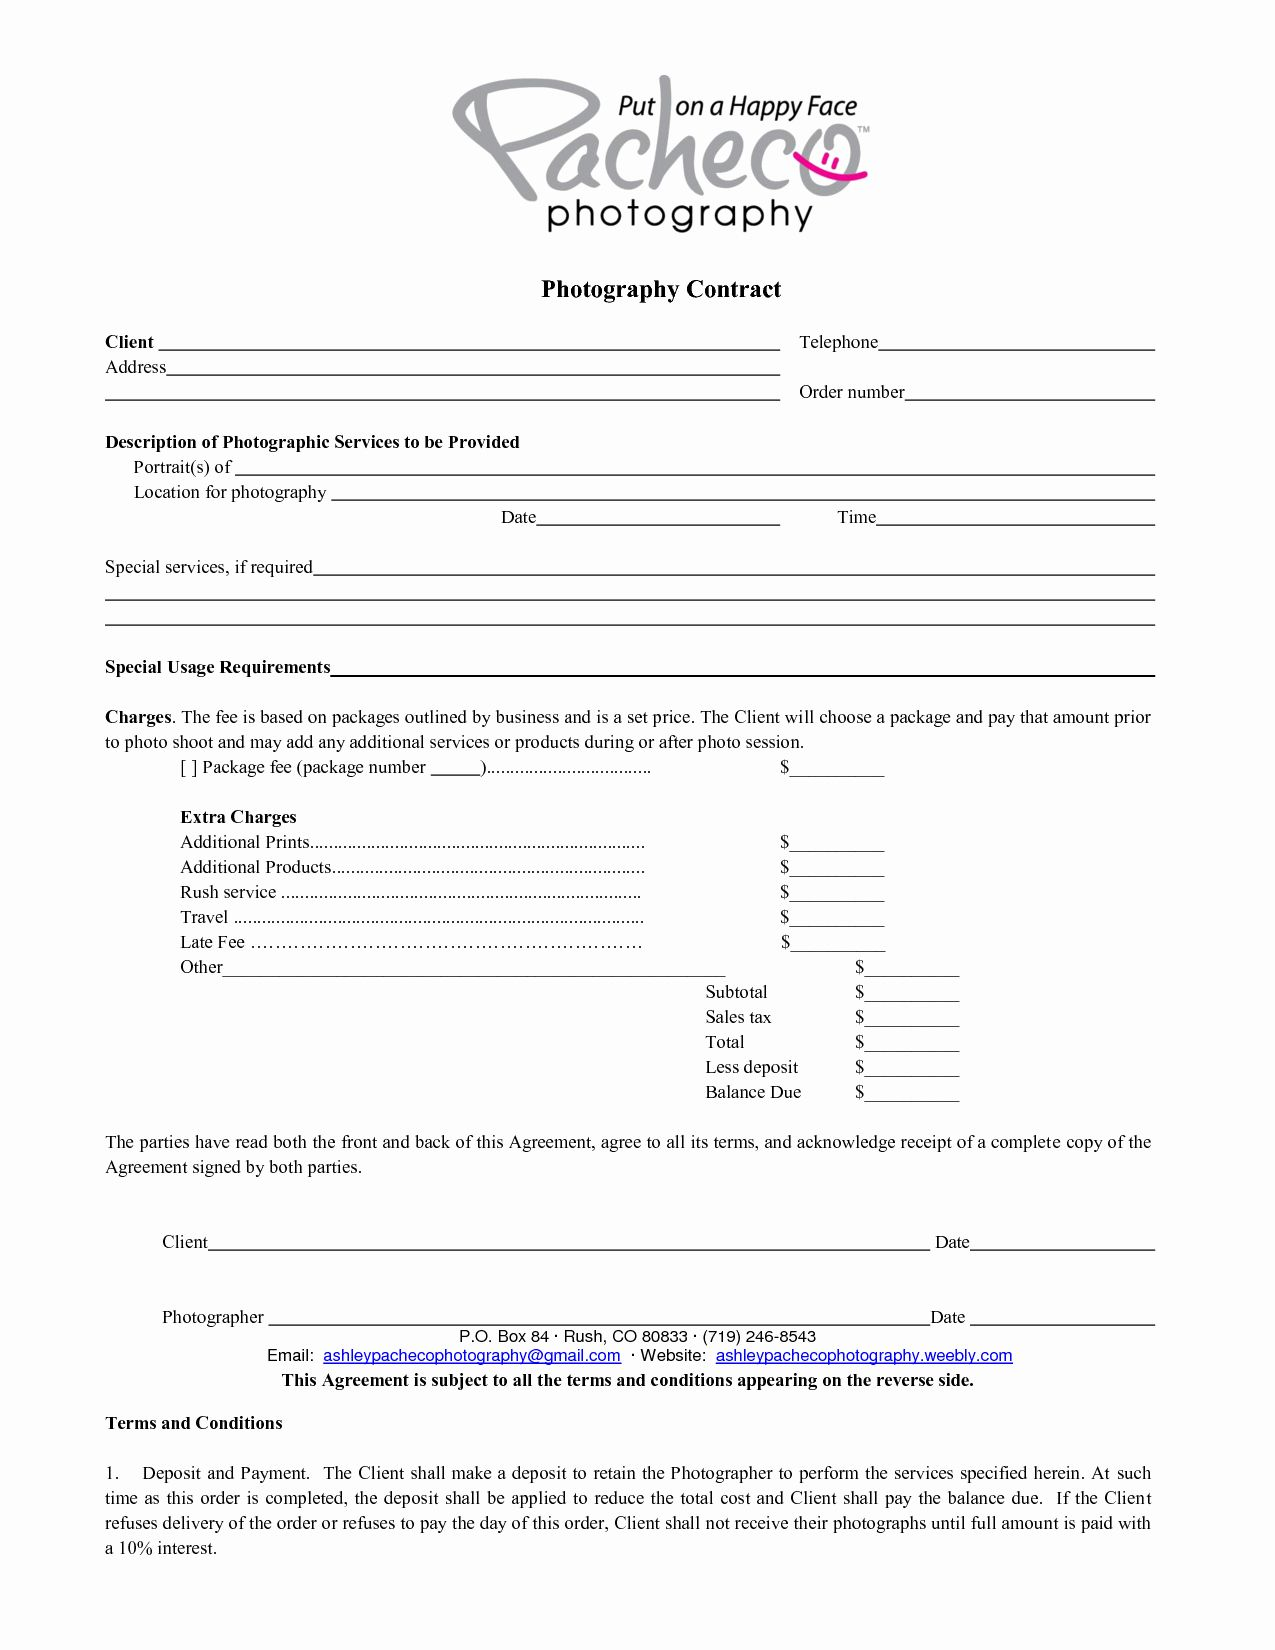 Portrait Photography Contract Template Best Of Graphy Contract Template In 2020 Wedding Photography Contract Template Wedding Photography Contract Photography Contract